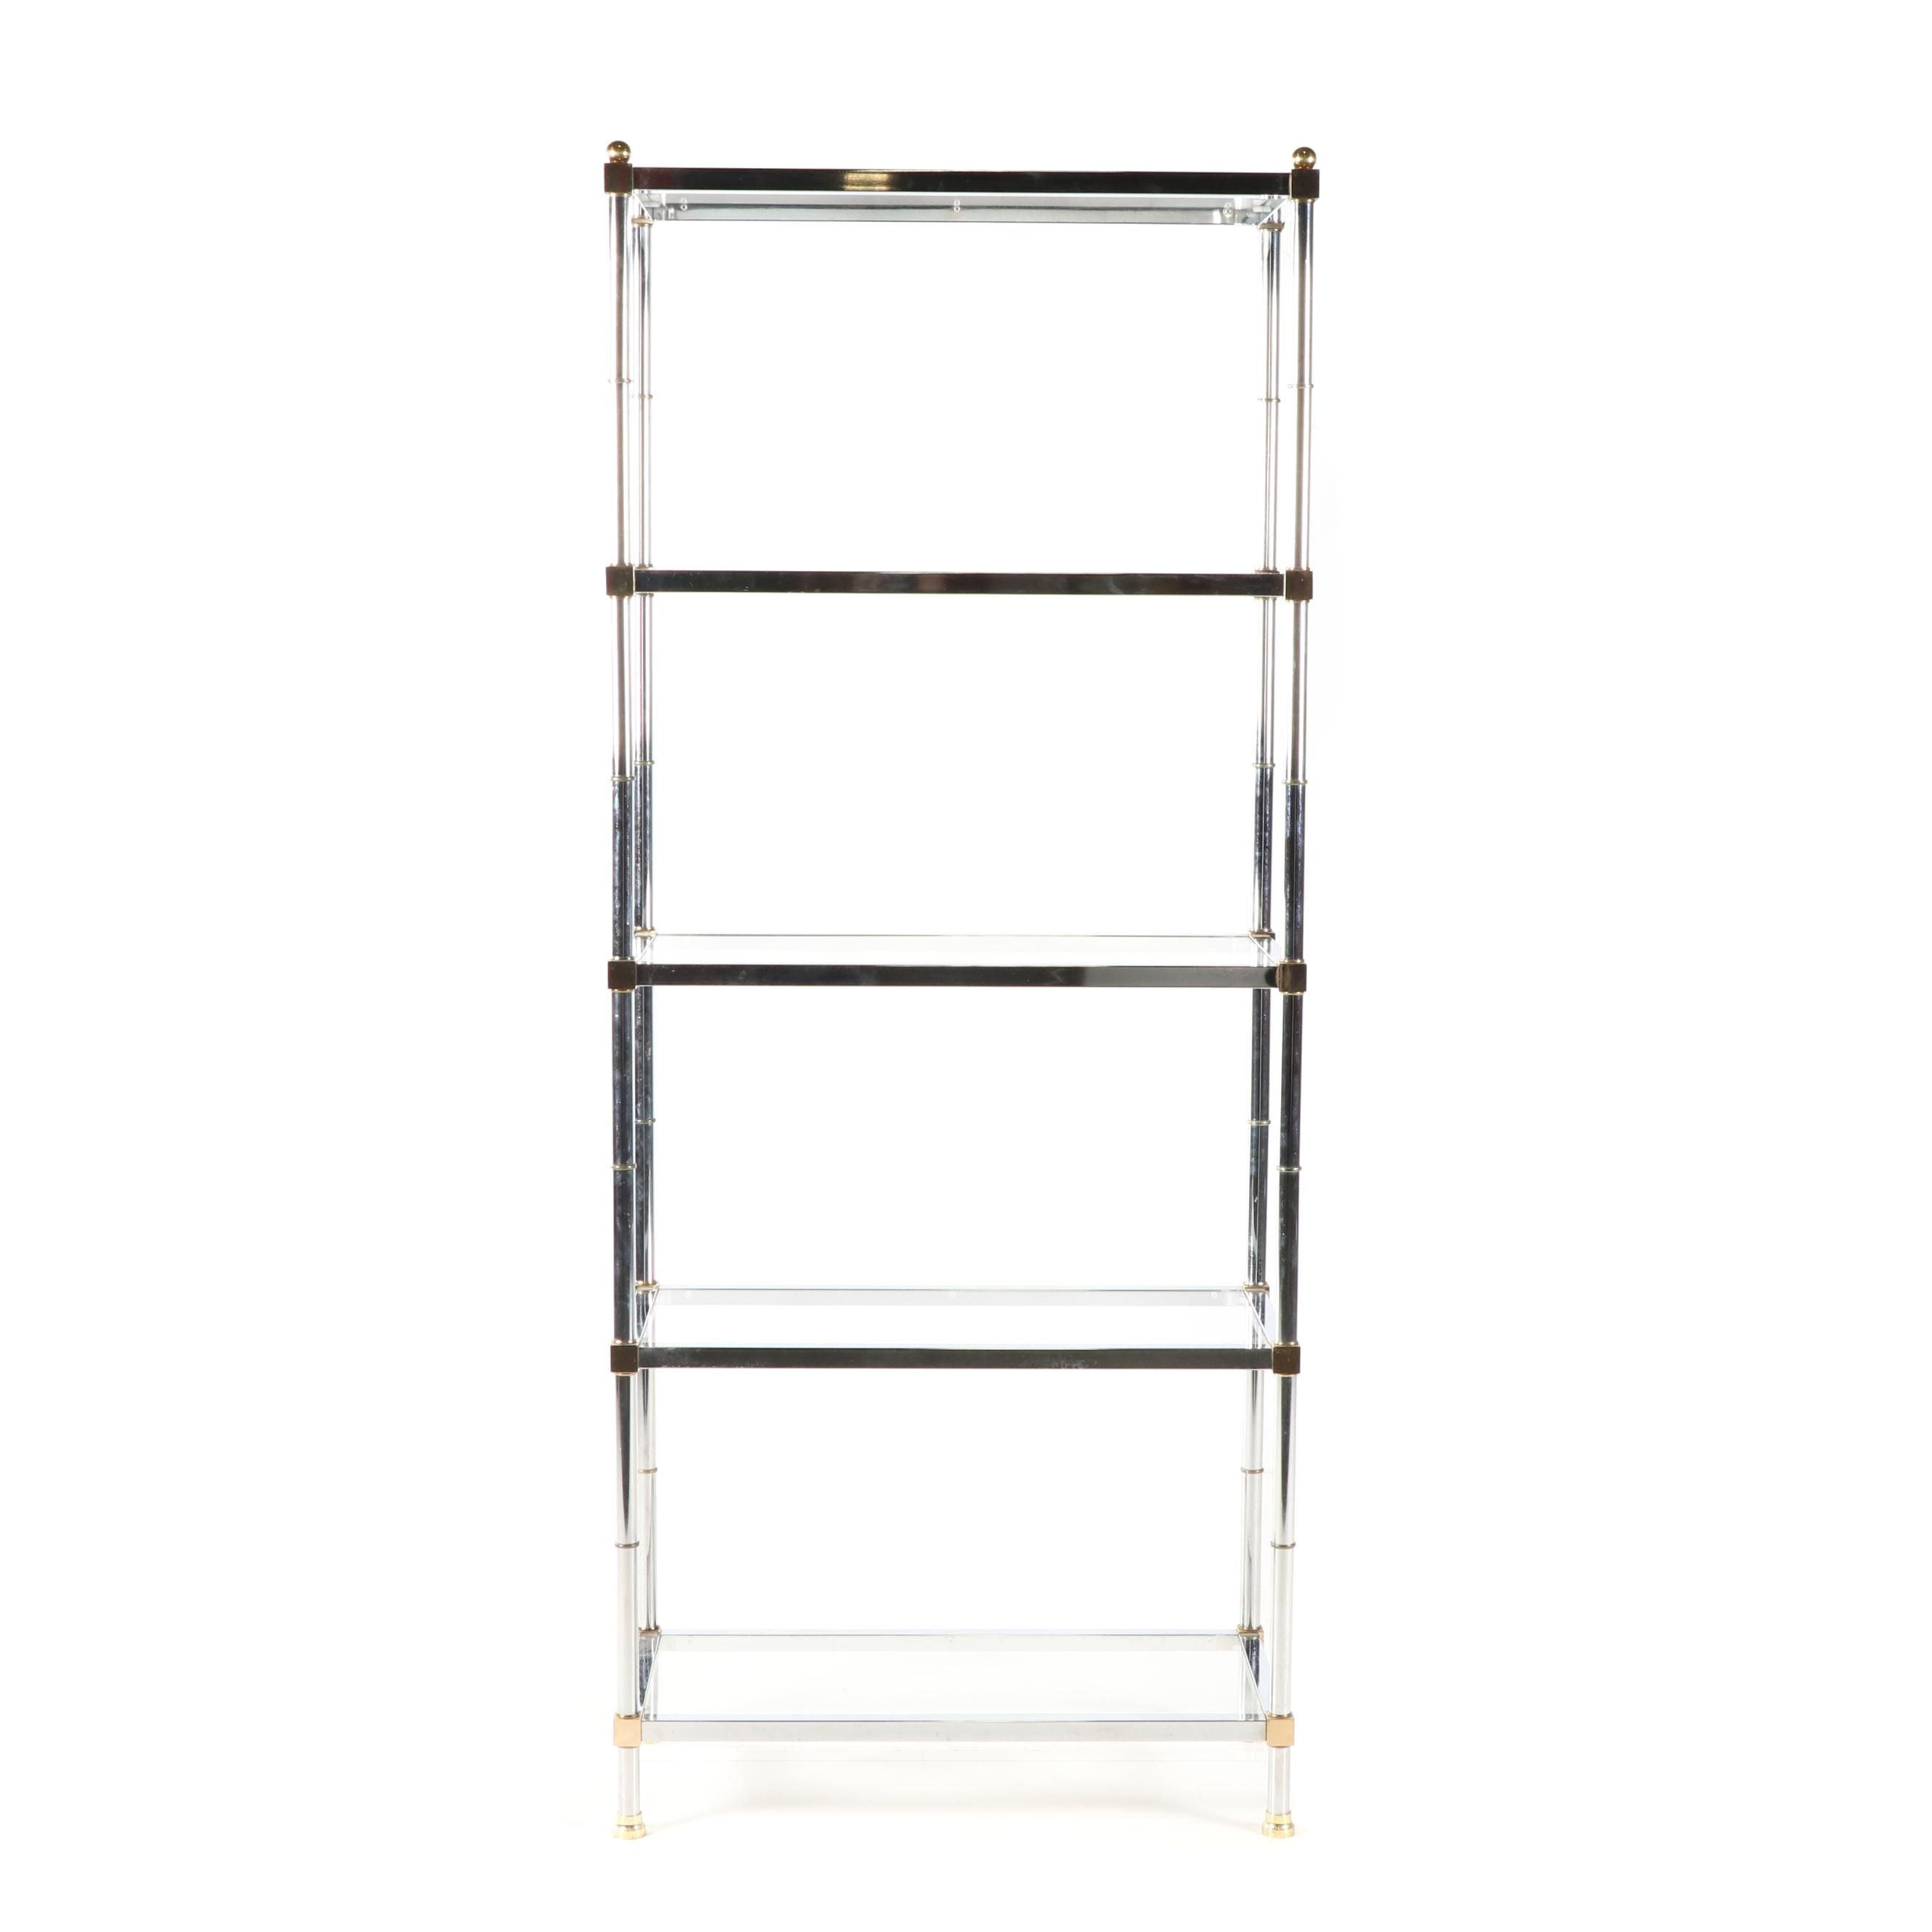 Contemporary Glass and Metal Shelving Unit